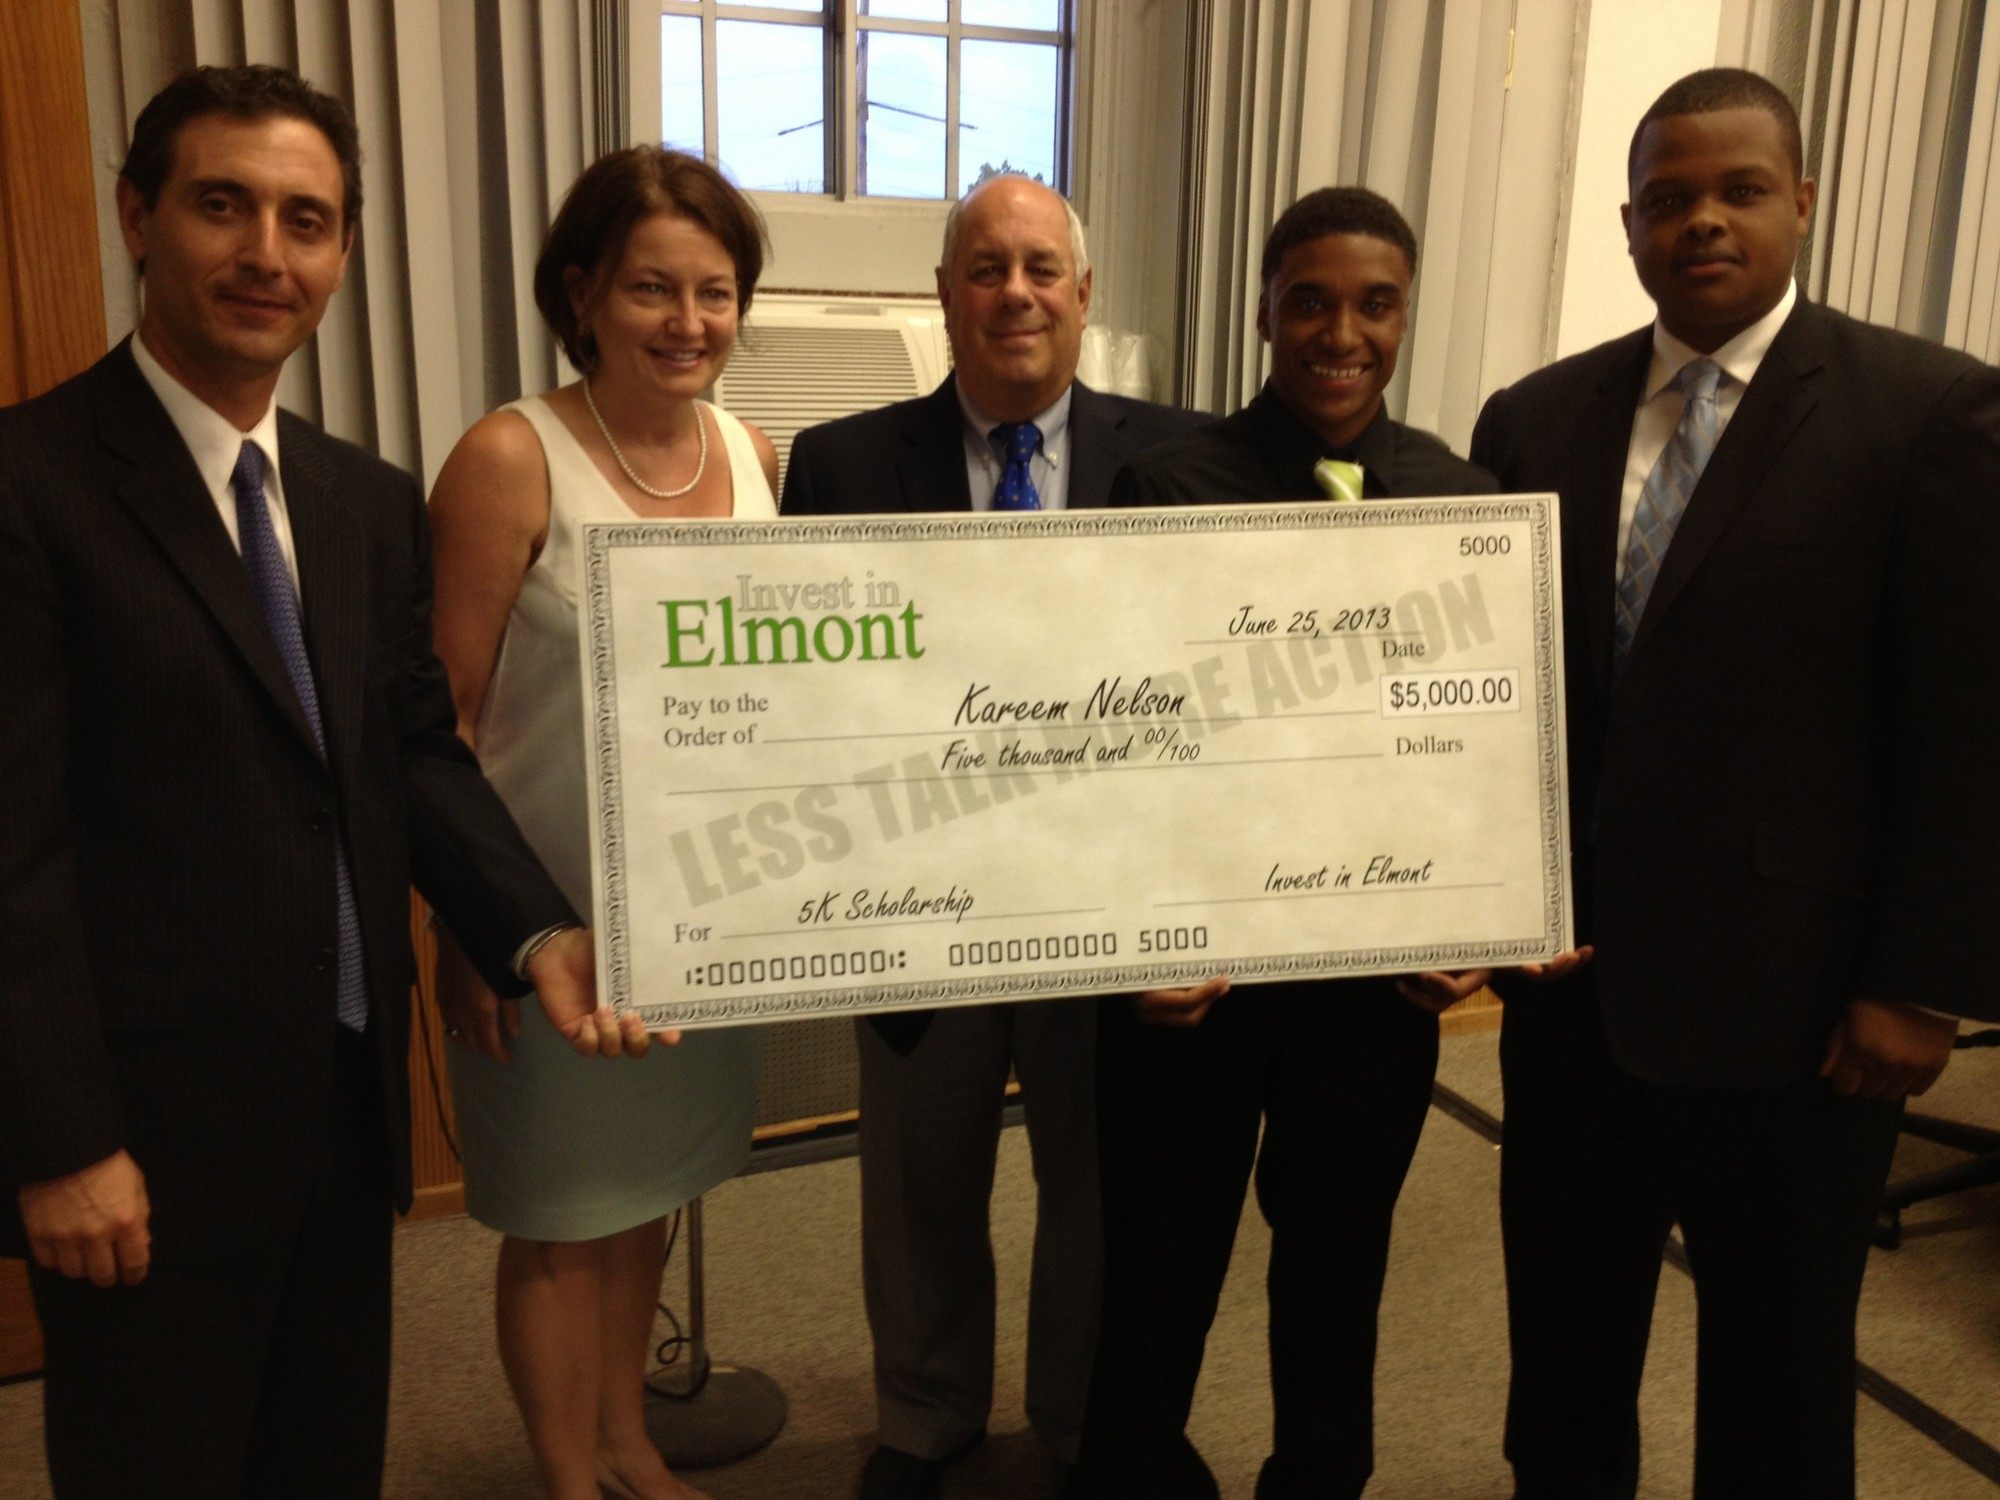 Invest in Elmont co-founder Muzzio Tallini, far left, Floral Park Memorial High School Principal Kathleen Sottile, Sewanhaka Schools Superintendent Dr. Ralph Ferrie, contest winner Kareem Nelson and Invest in Elmont co-founder Carl Achille after Nelson�s business idea for Belmont Park was announced as the program�s winner.